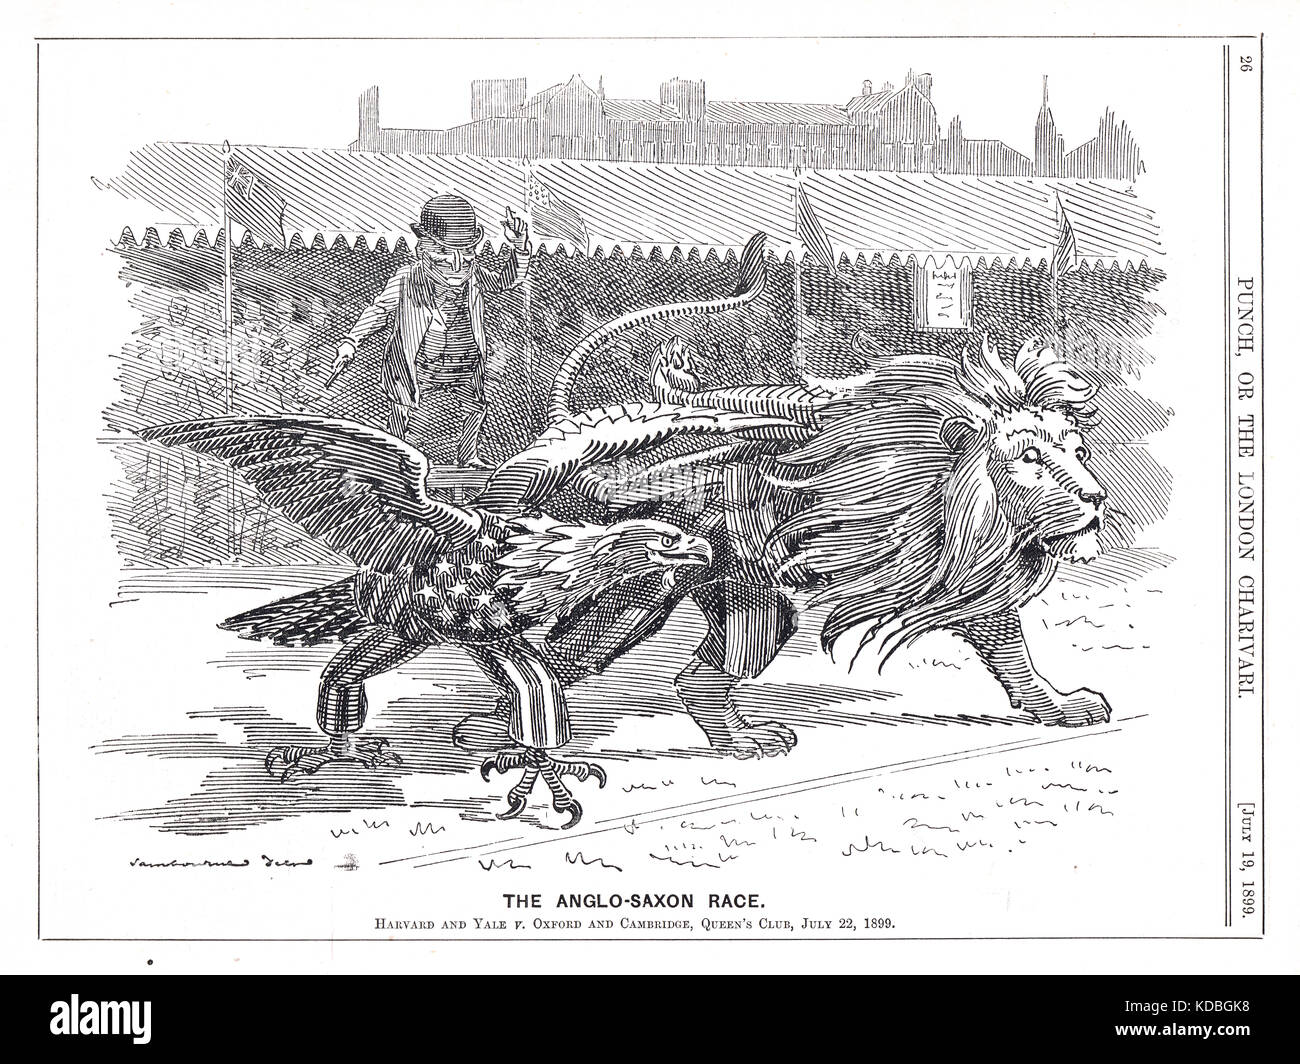 Athletics meeting at Queen's club, 22 July 1899.  Oxford and Cambridge v. Harvard and Yale.universities.  Punch - Stock Image